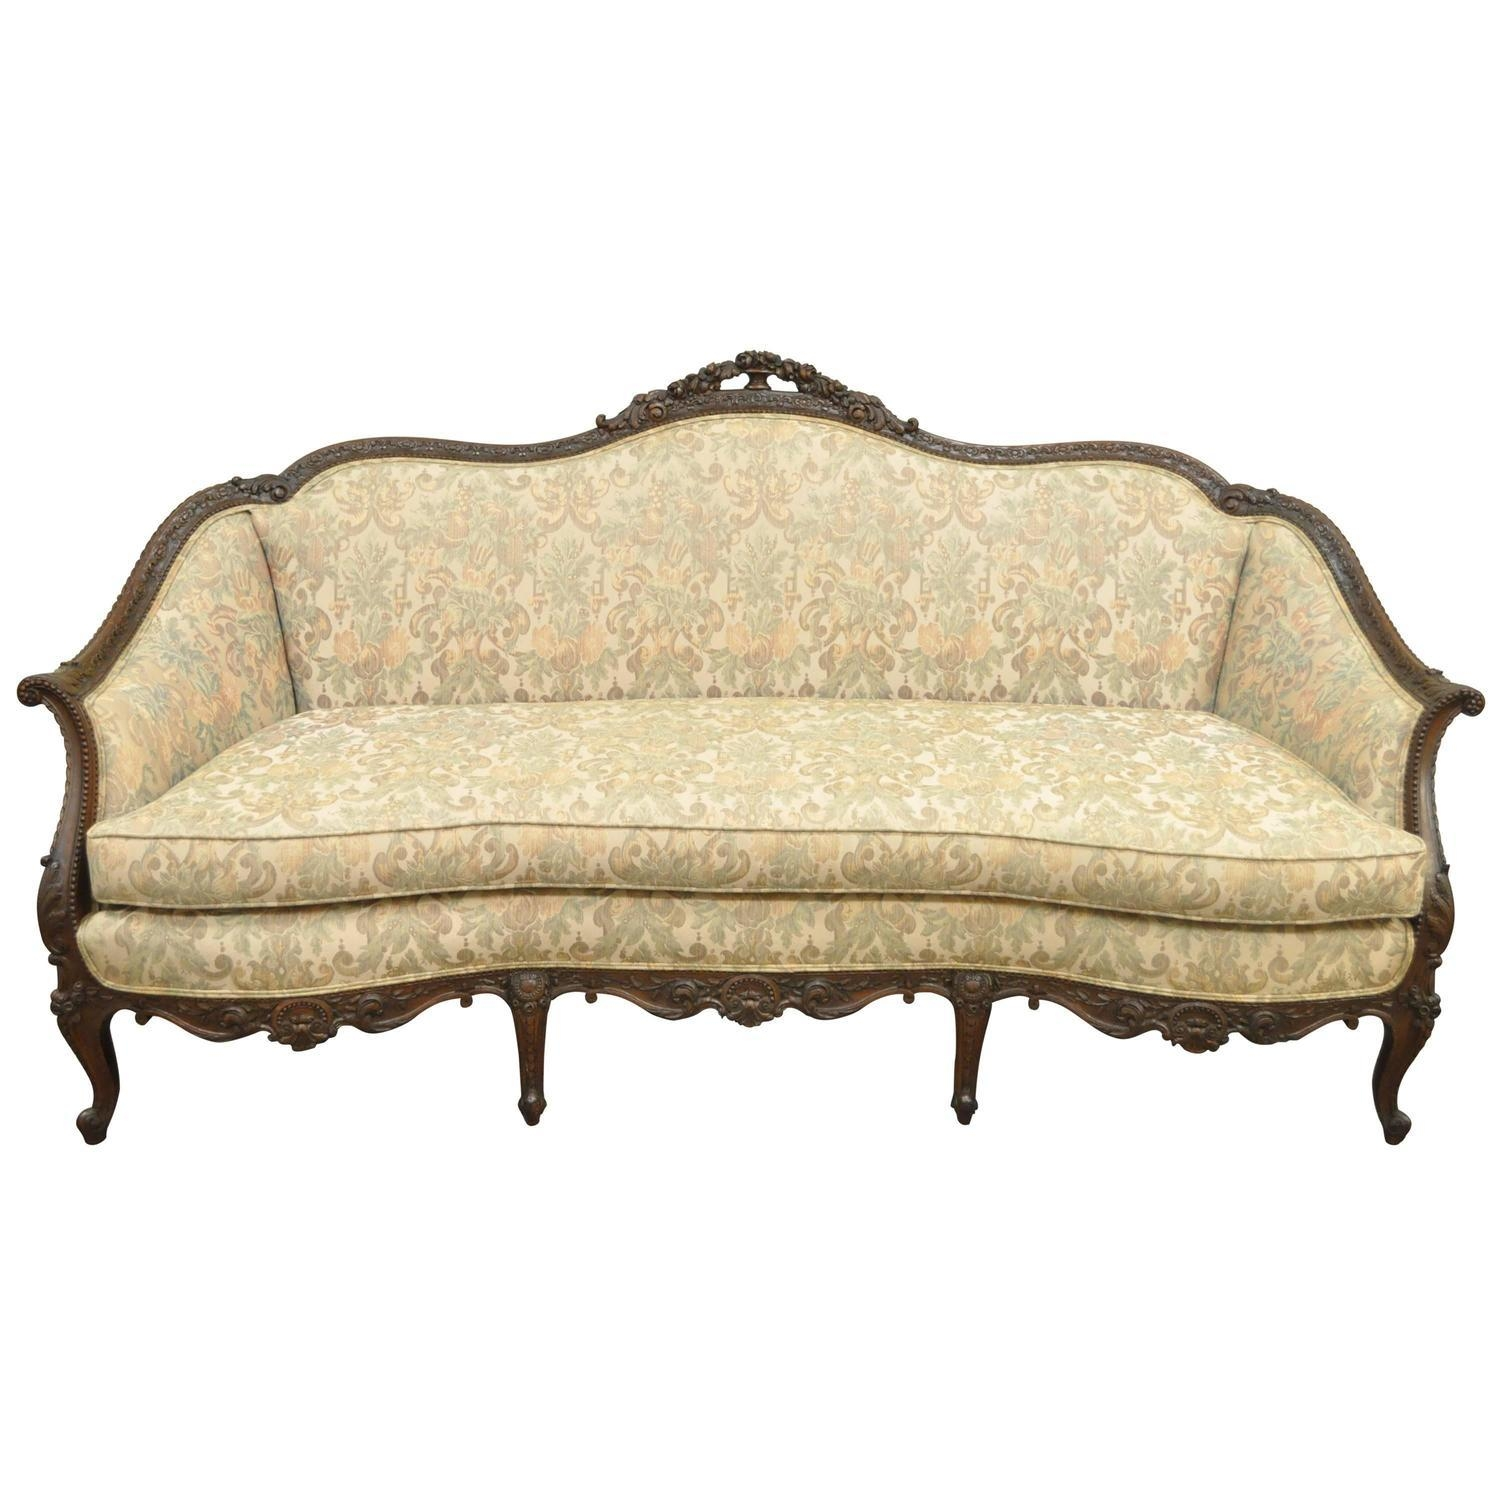 1930S French Louis Xv Hollywood Regency Style Finely Carved with 1930S Sofas